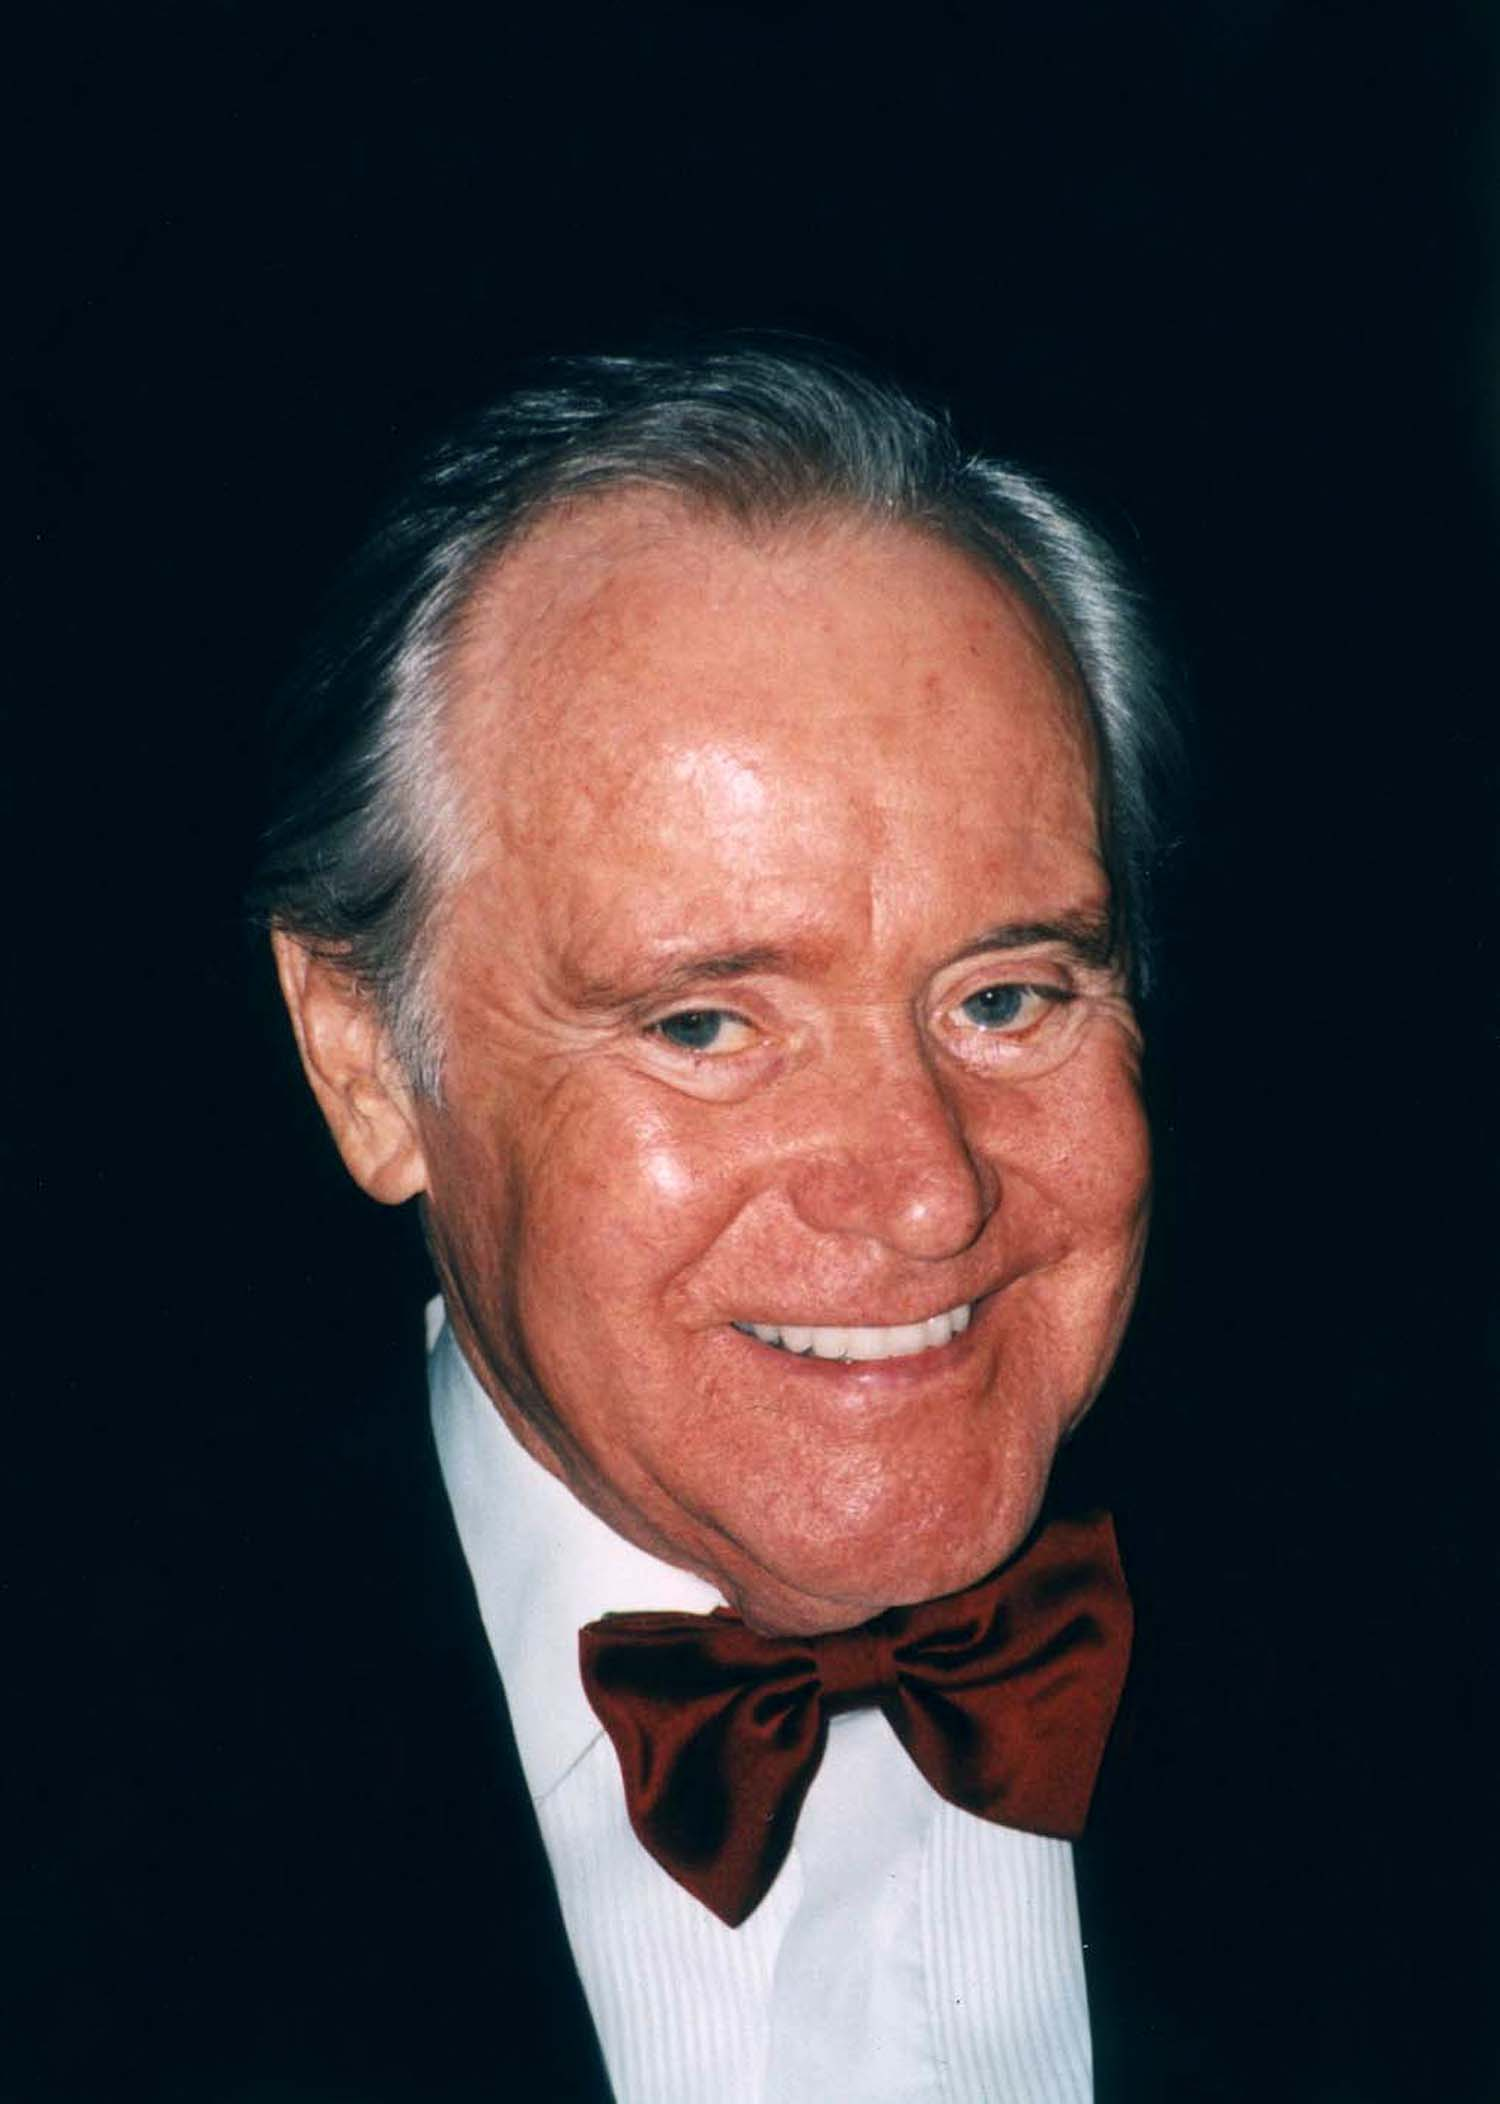 A photo of actor Jack Lemmon from 2002. | Photo: Wikimedia Commons